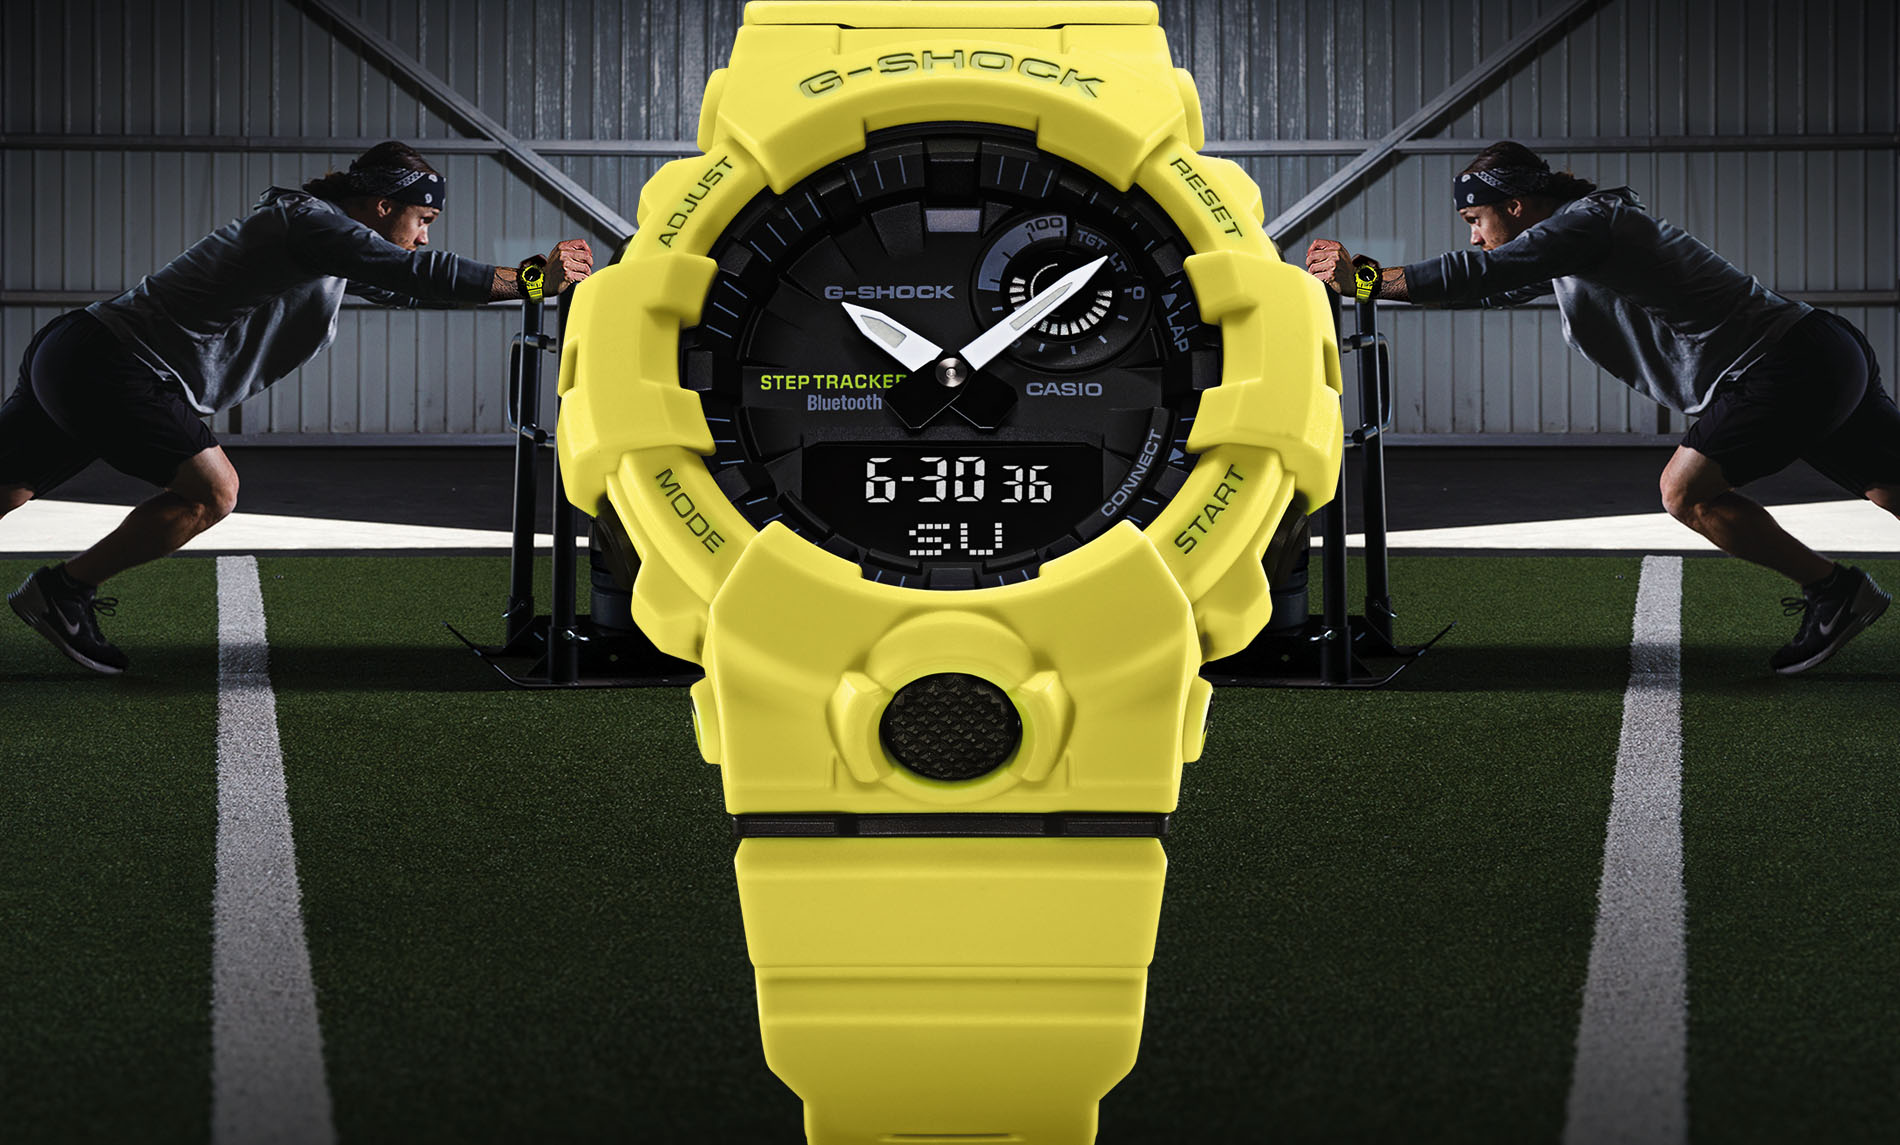 gba800 g-shock watch